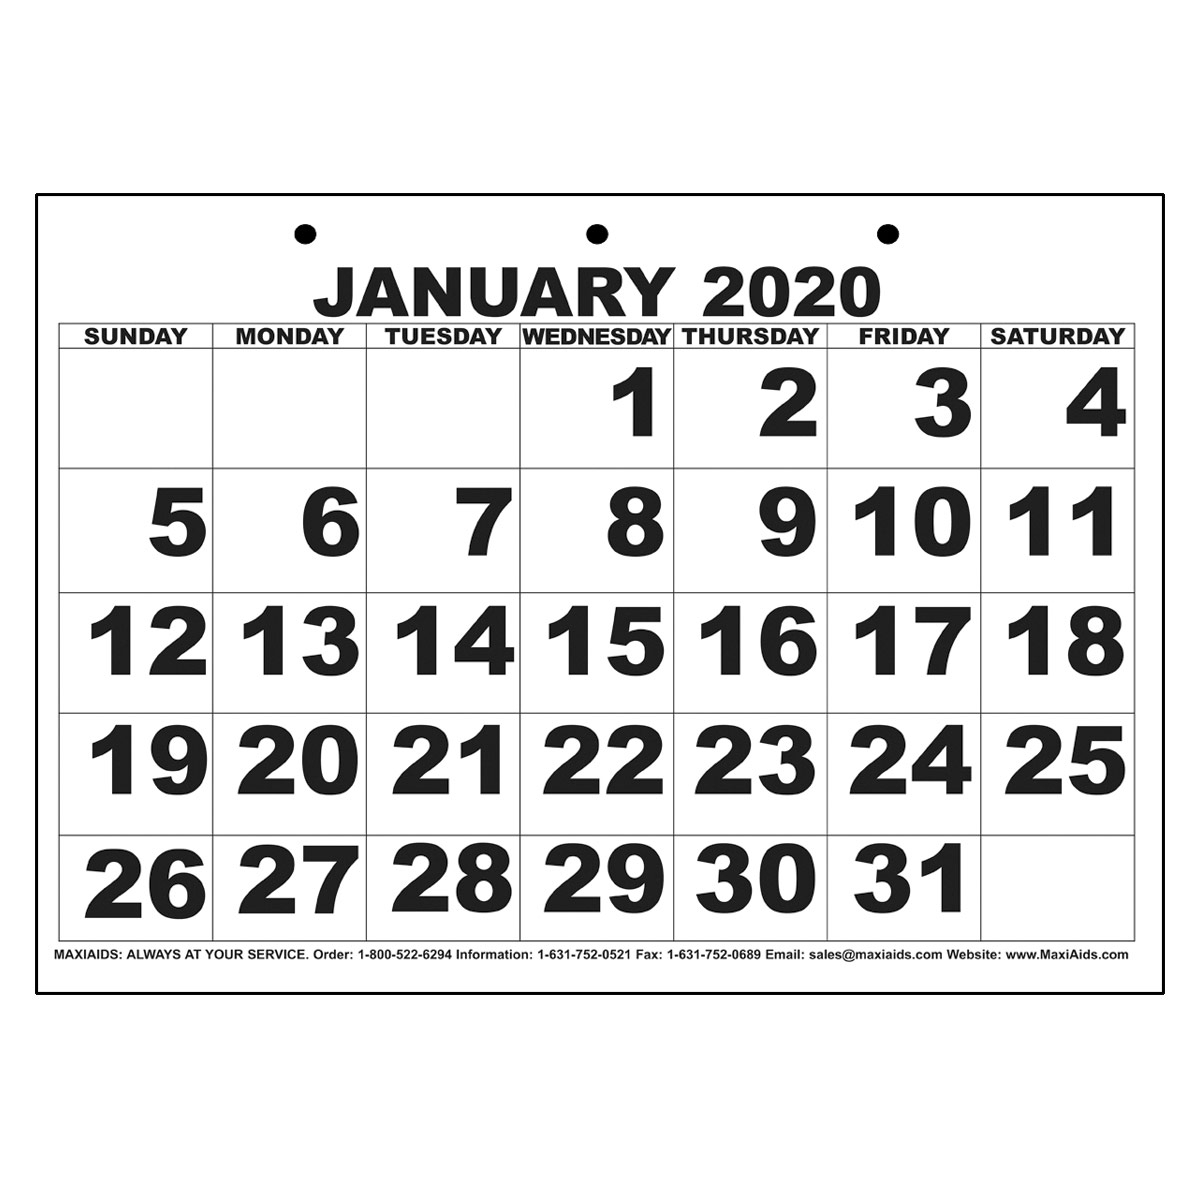 Low Vision Print Calendar  2020 with regard to Keyboard Calendar Strips 2020